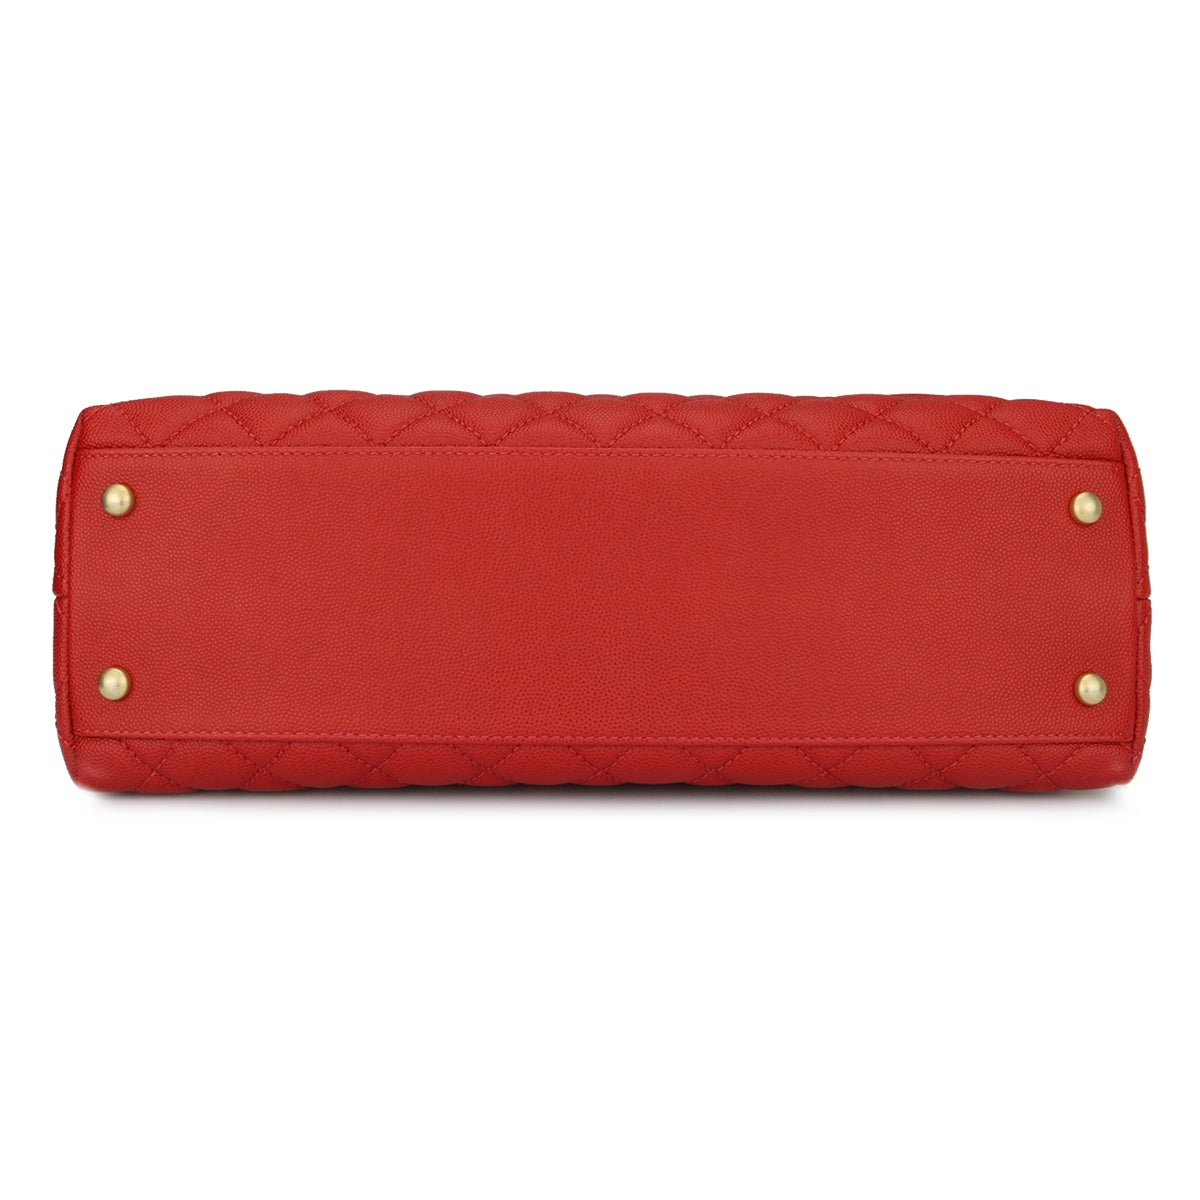 60c0e8b7dae38d Chanel Coco Handle Large Red Caviar bag with Brushed Gold Hardware, 2018 at  1stdibs